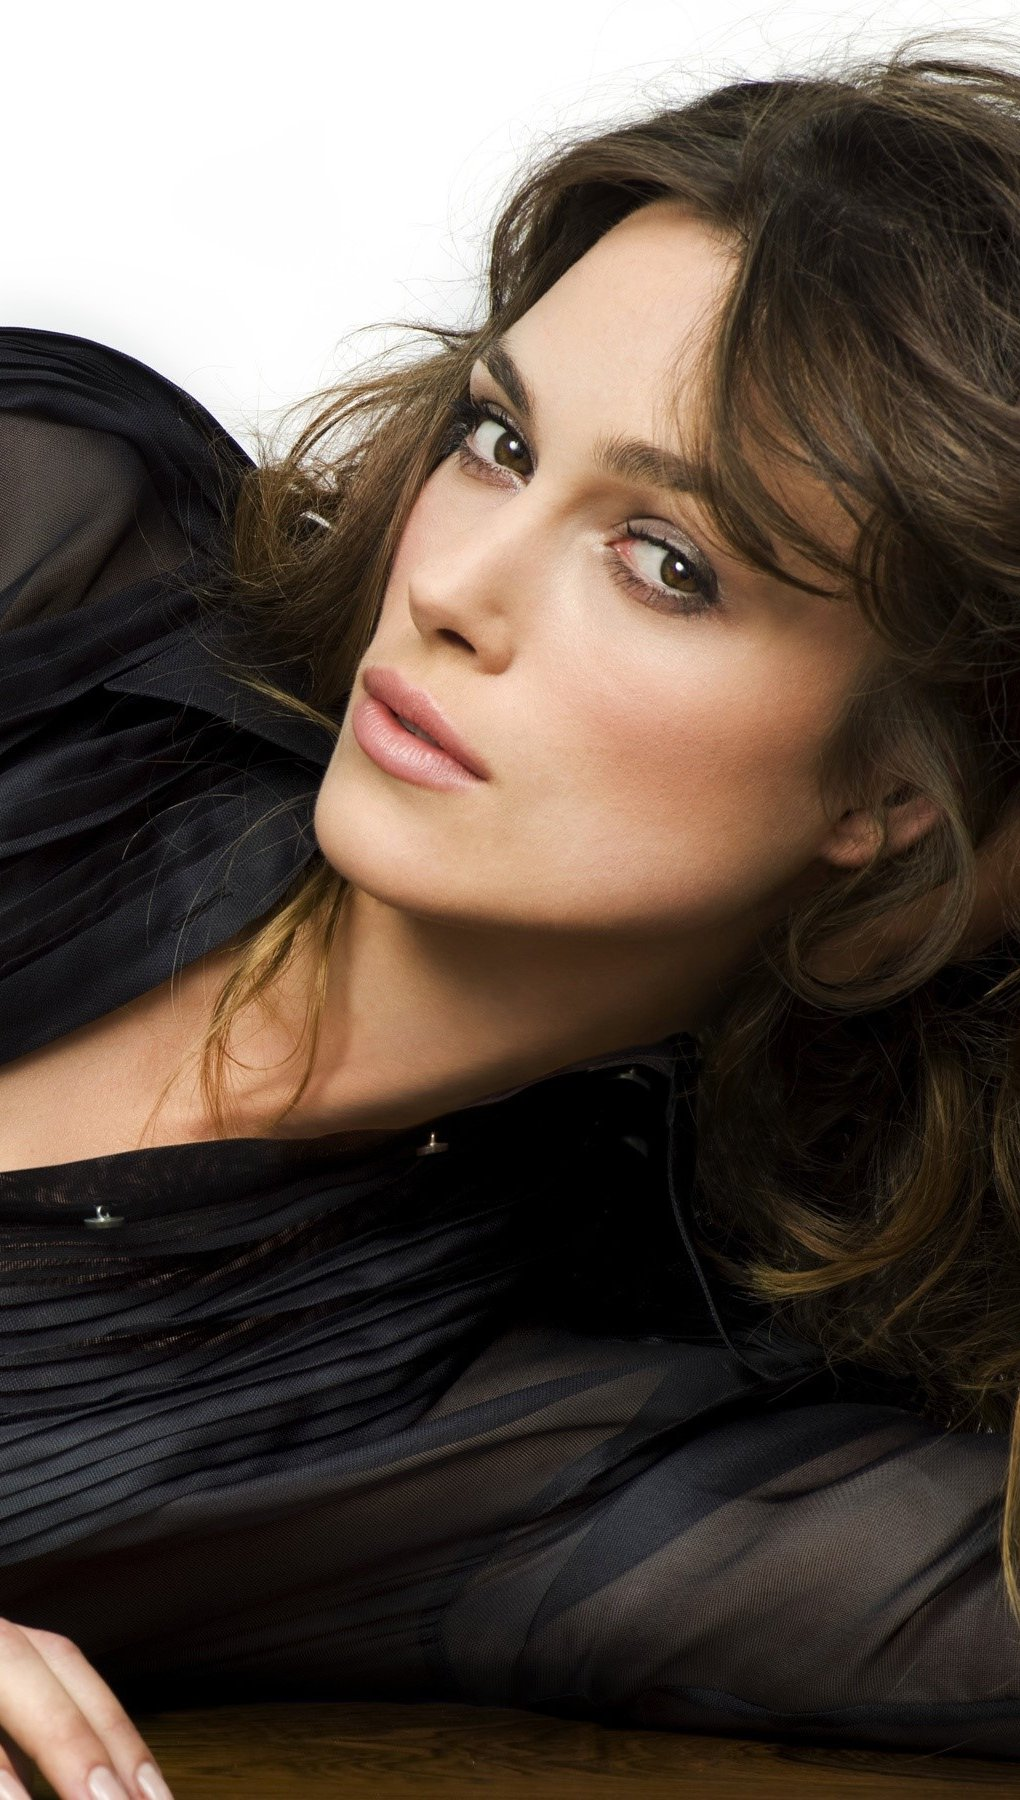 Wallpaper Keira Knightley Vertical